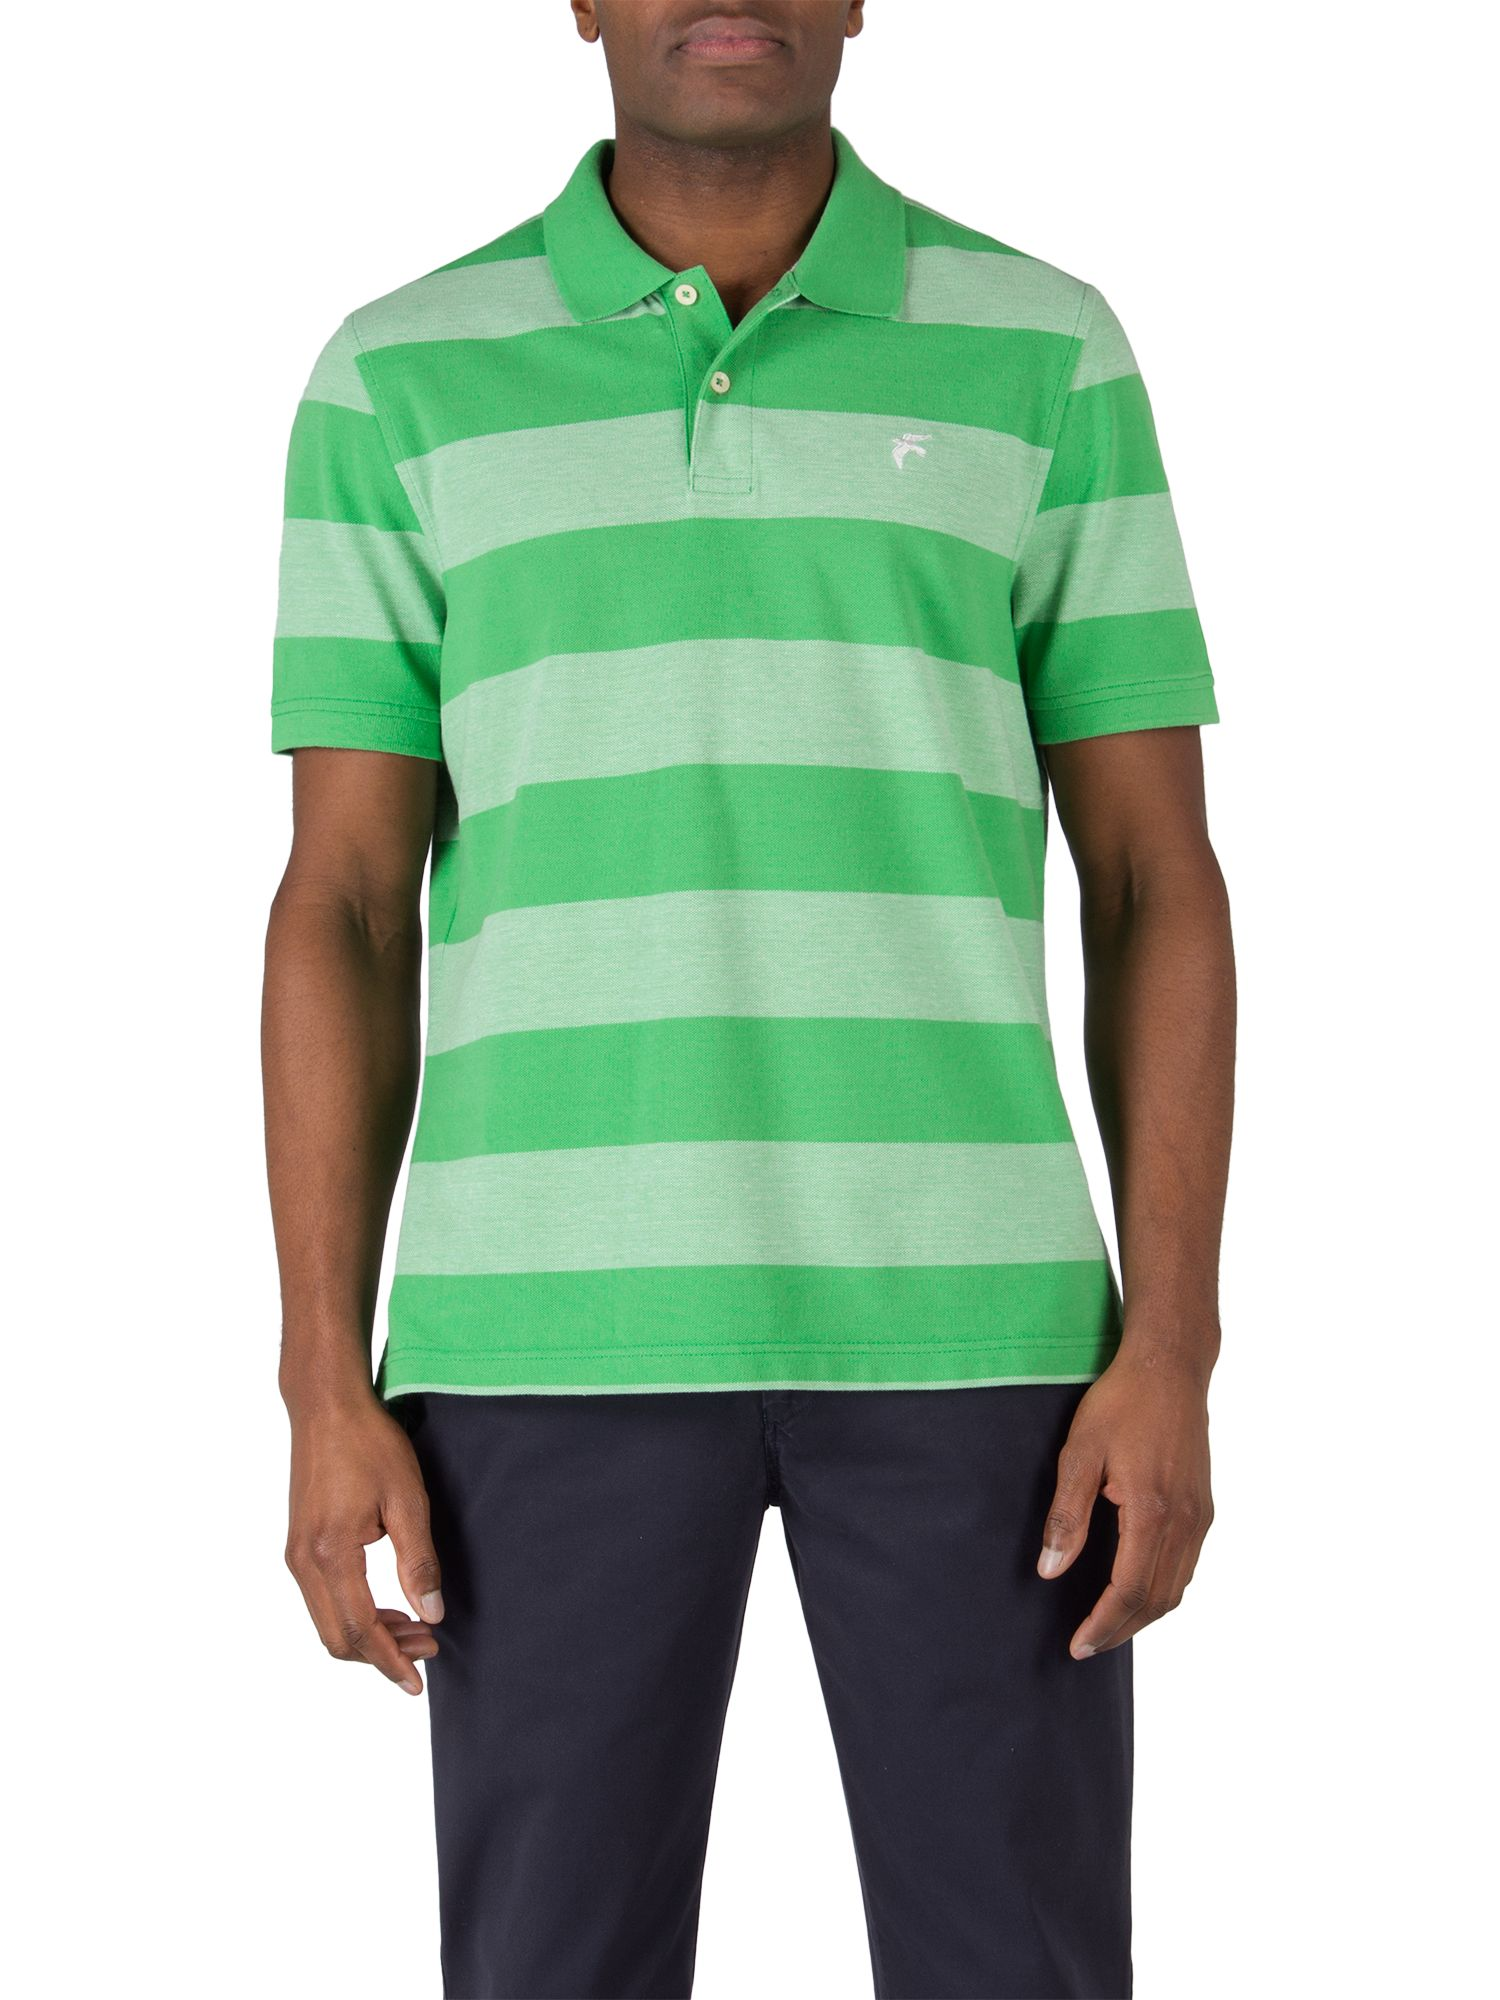 Coates birdseye stripe polo shirt